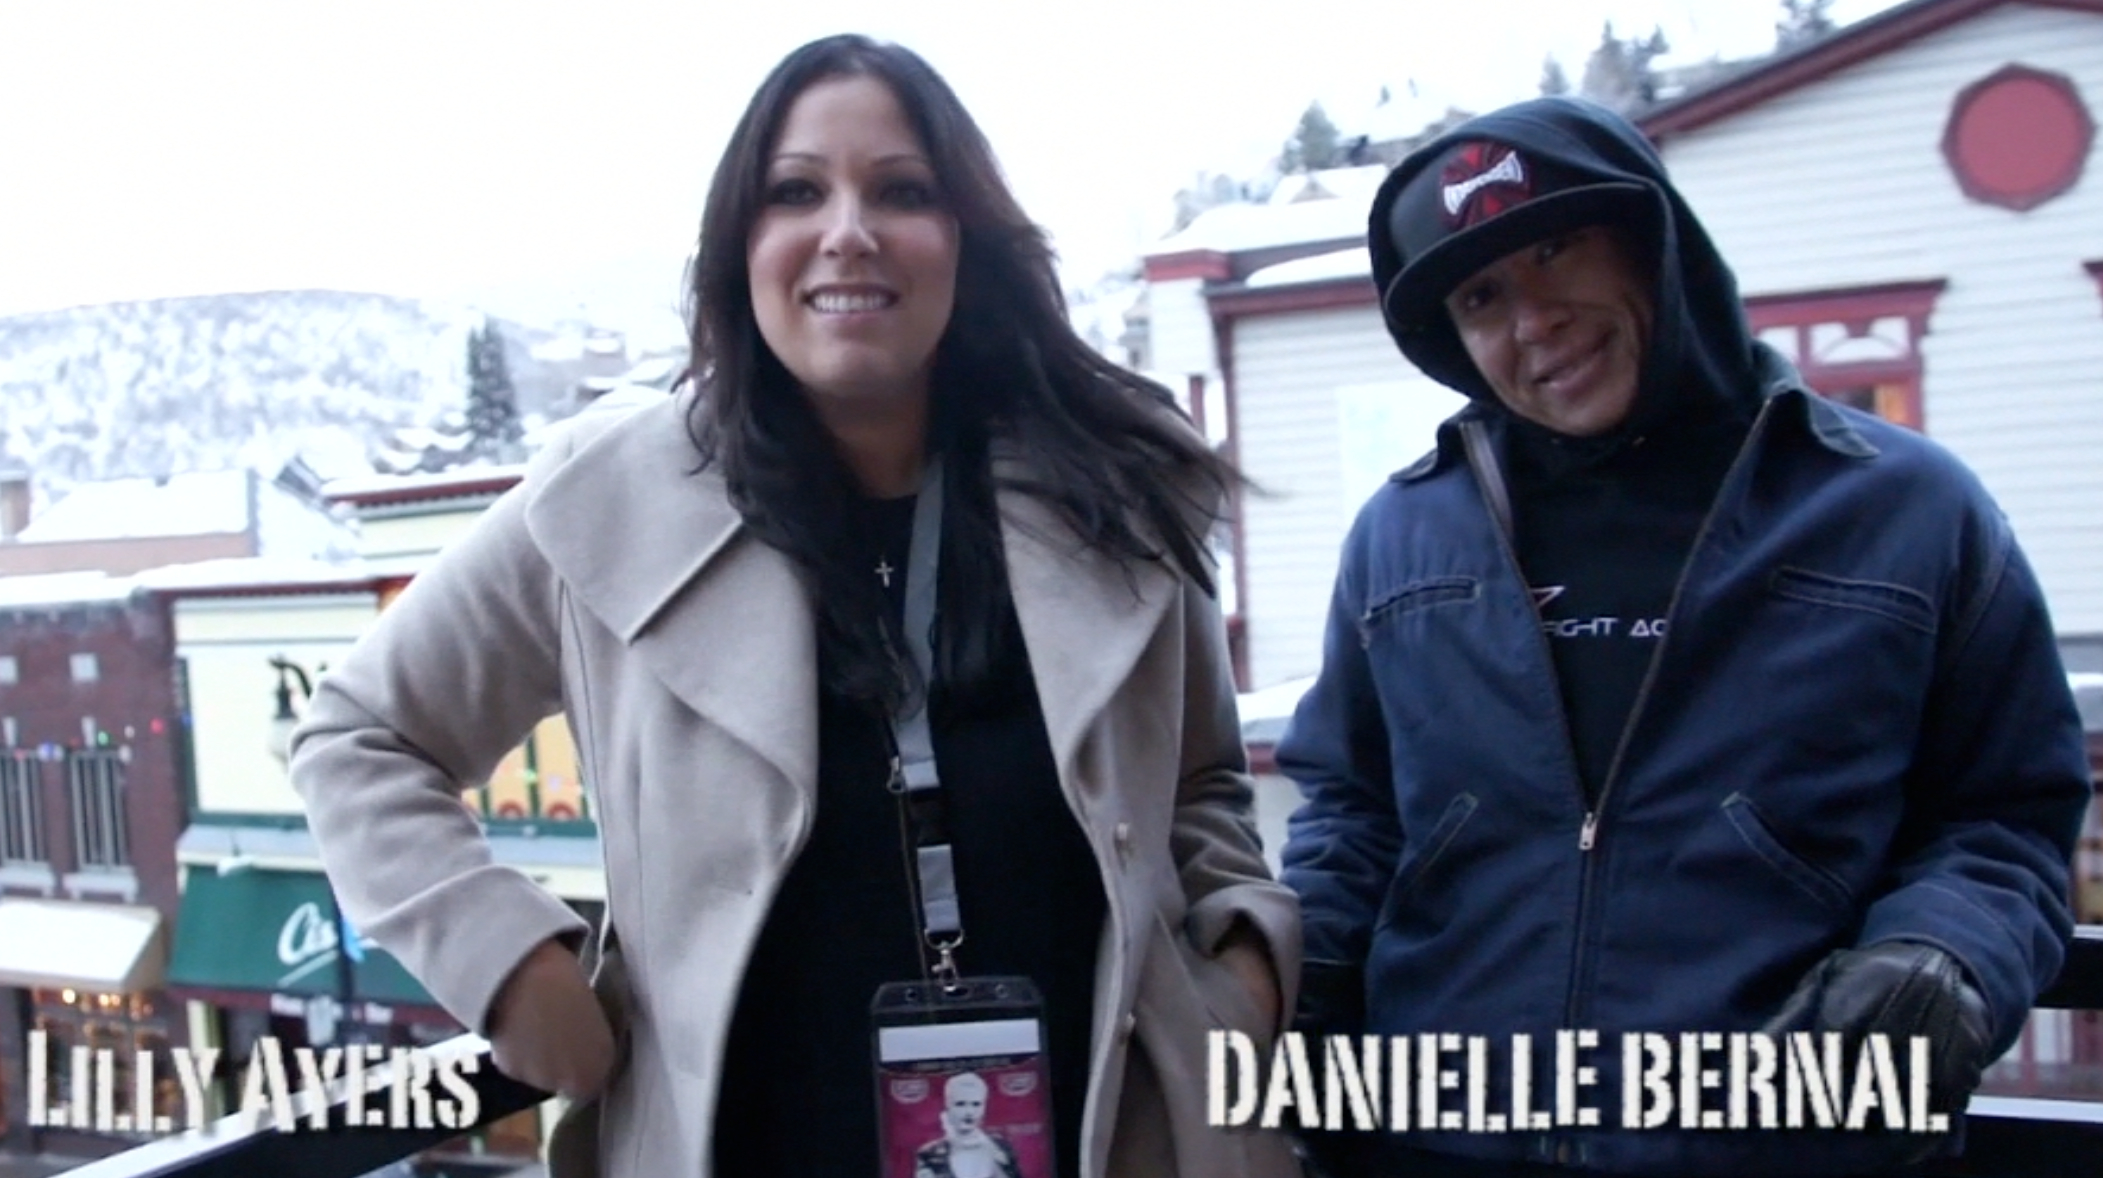 VIDEO PODCAST: Lilly Ayers (director) and Danielle Bernal (associate producer) of Last Fast Ride (USA)